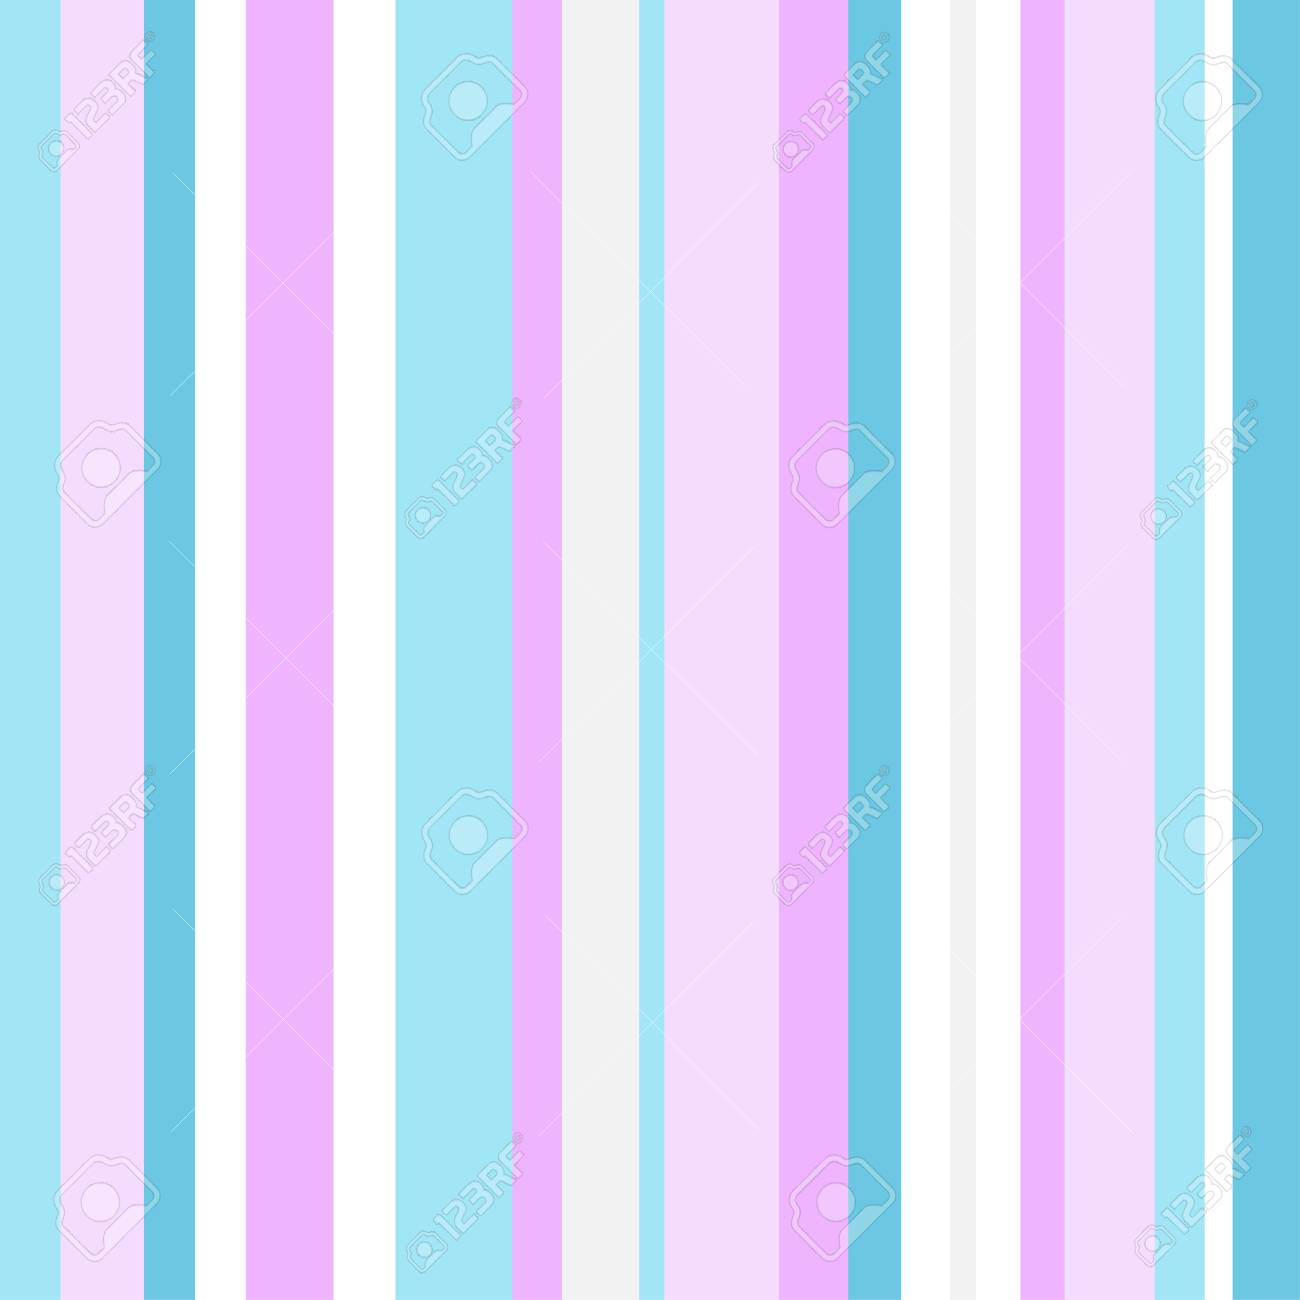 seamless striped pattern with stylish and bright colors pink stock photo picture and royalty free image image 90037212 seamless striped pattern with stylish and bright colors pink